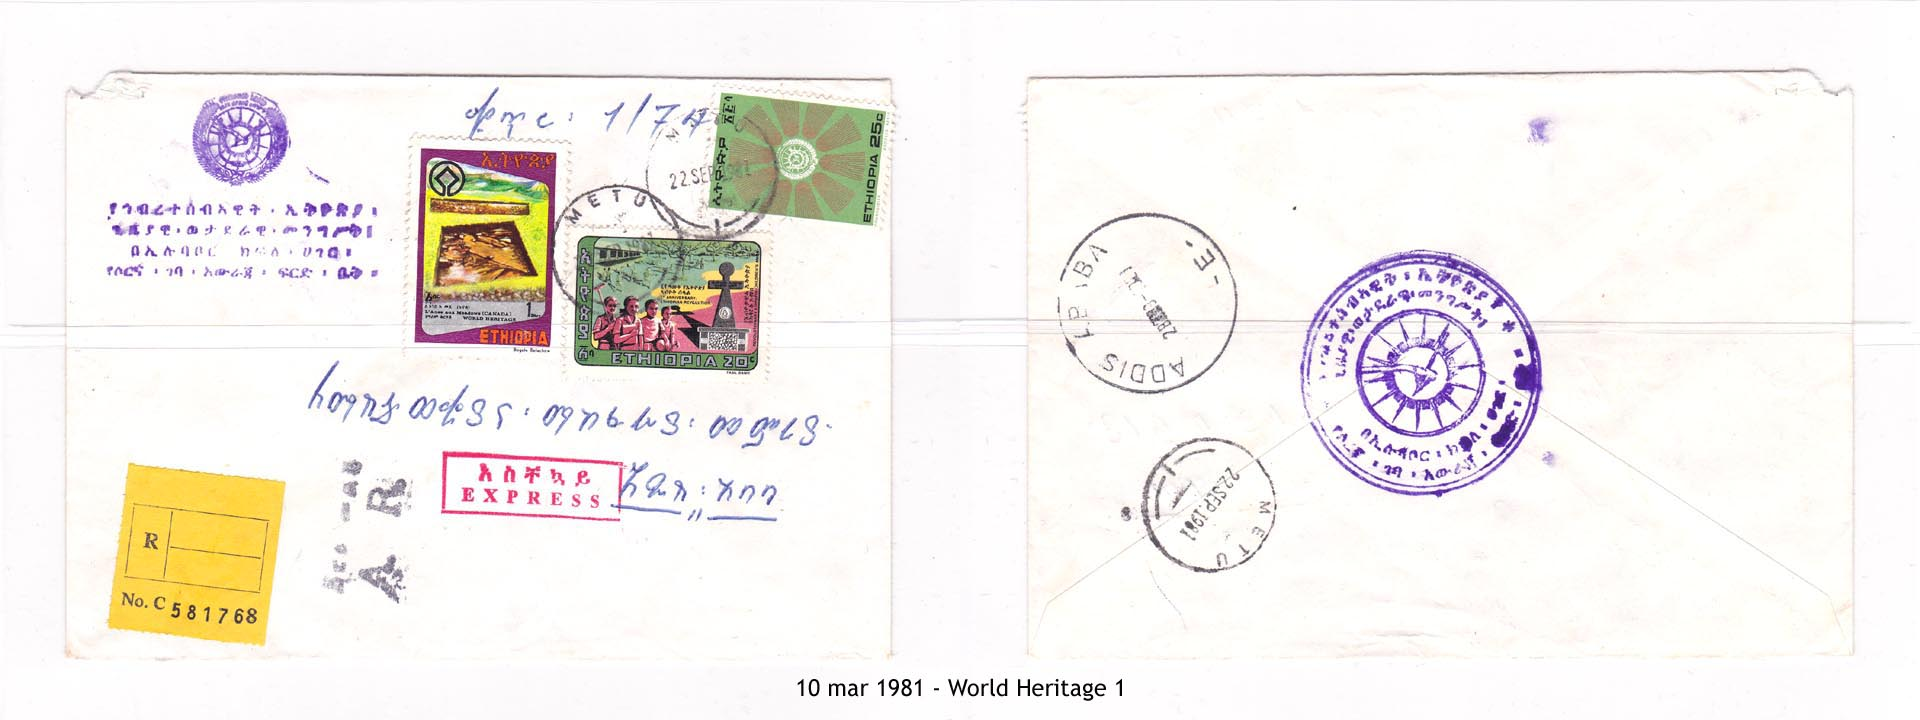 19810310 - World Heritage 1 z